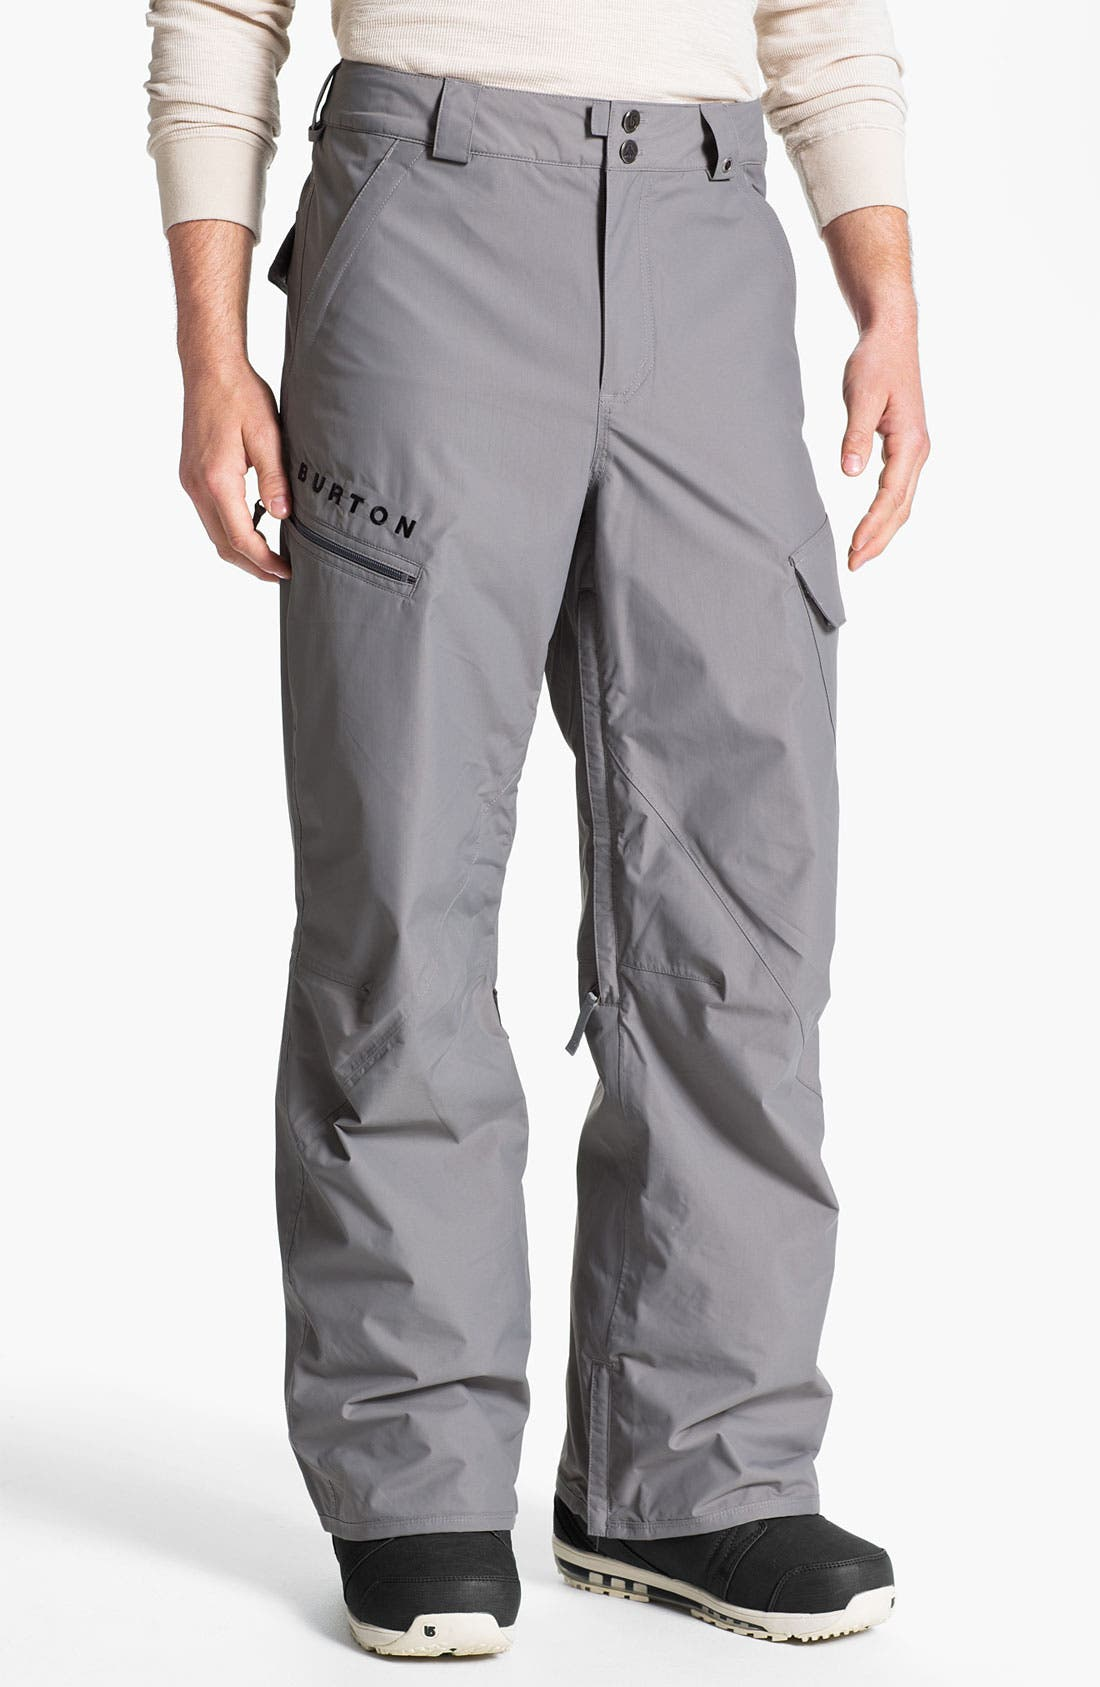 Alternate Image 1 Selected - Burton 'Poacher' Snowboard Pants